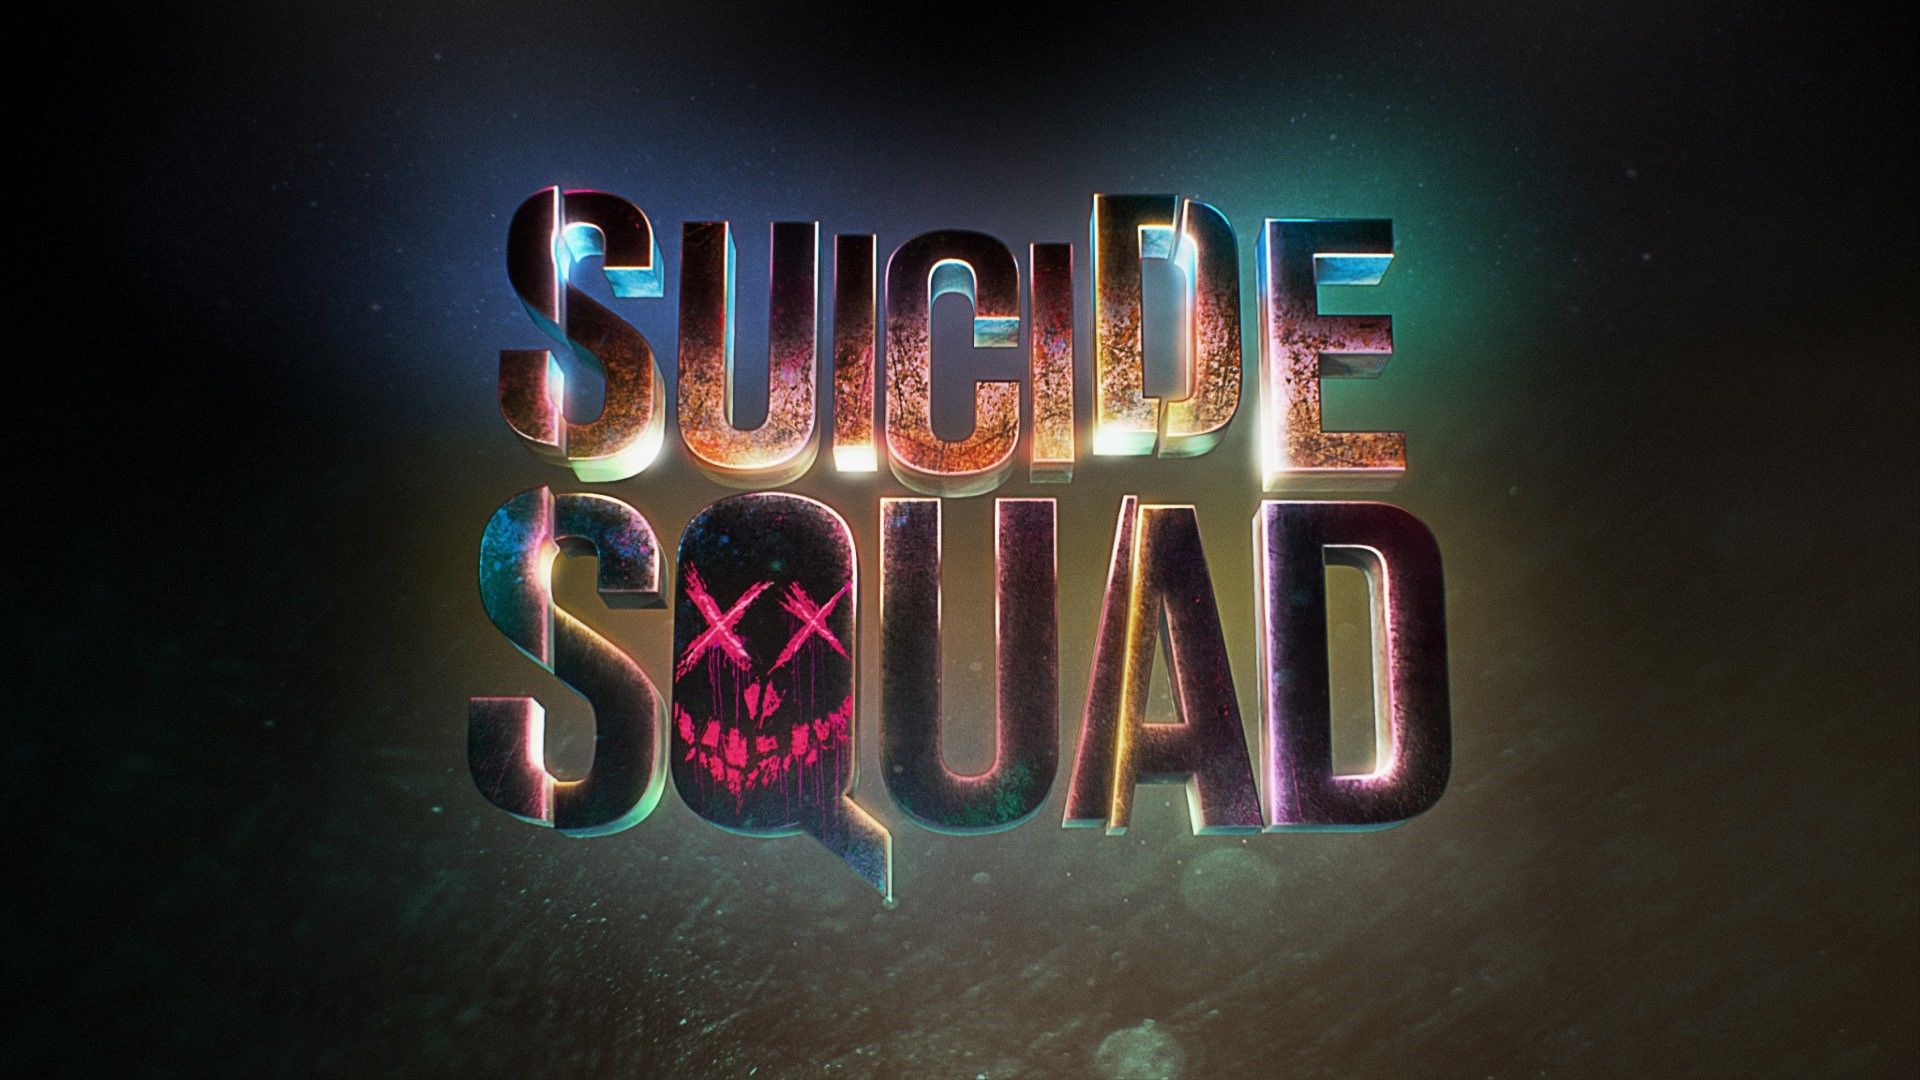 Wallpaper Suicide Squad Titulo con Luces Images